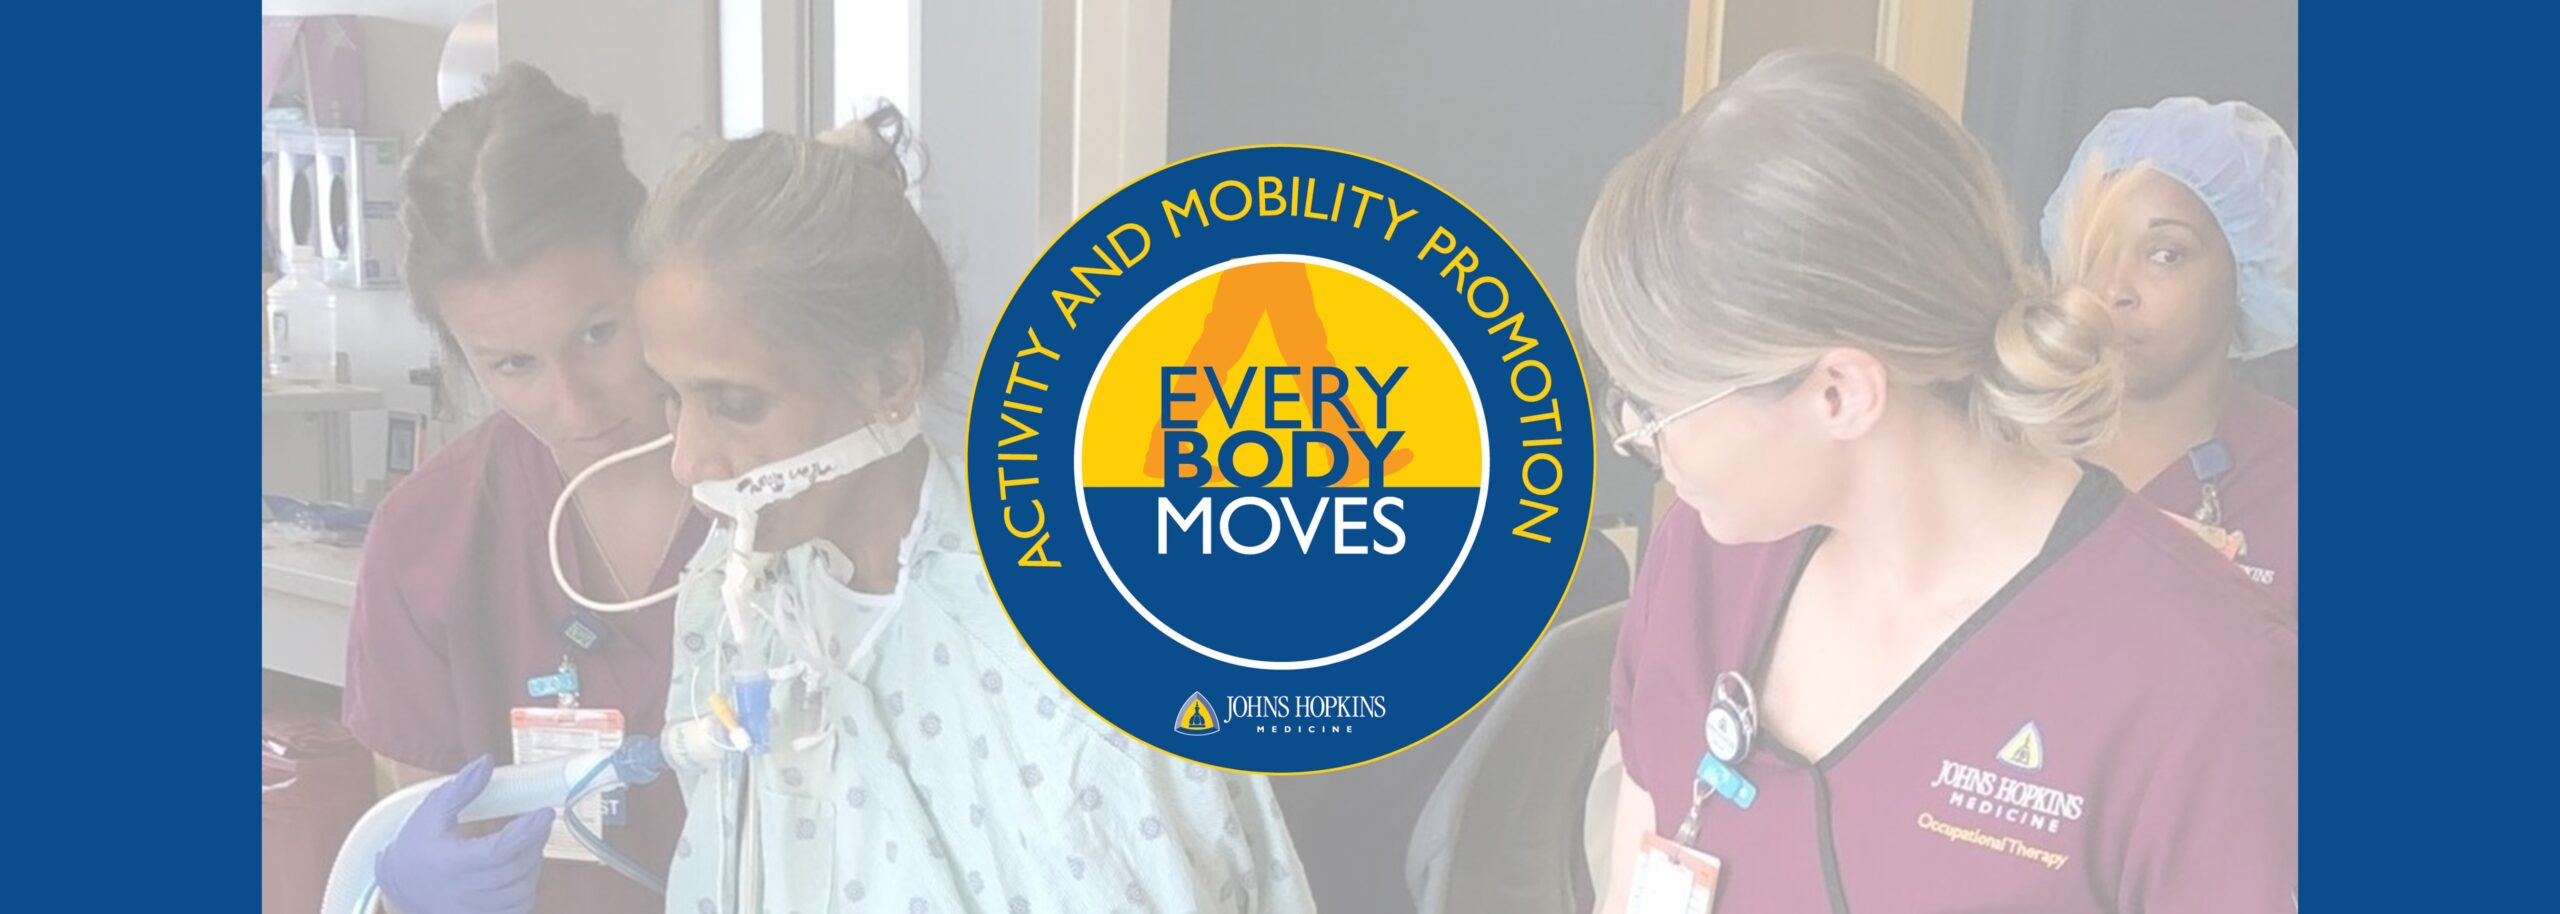 Johns Hopkins Activity and Mobility Promotion Solutions